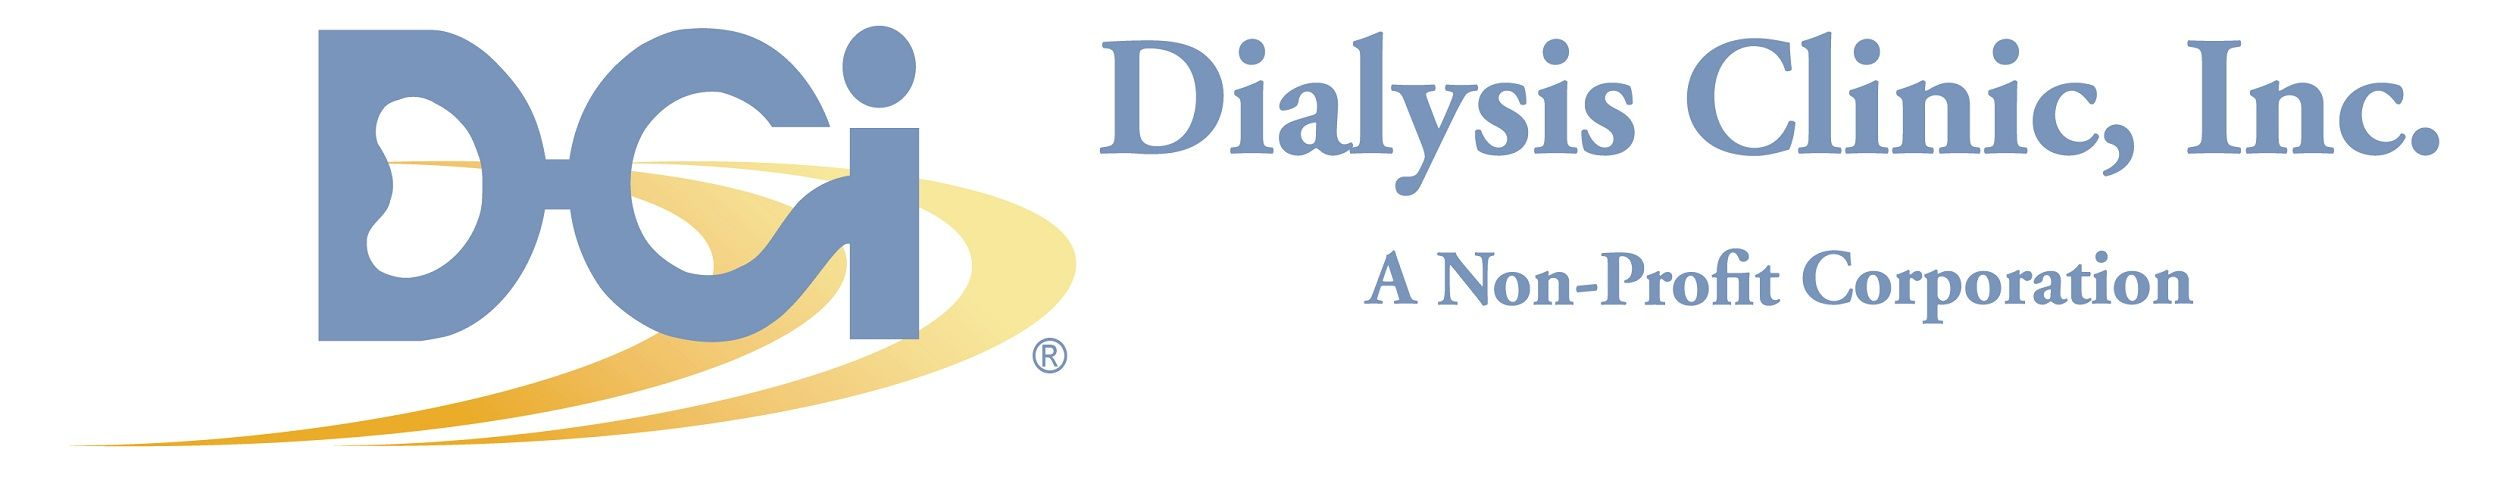 Dialysis Clinic Inc. (DCI)